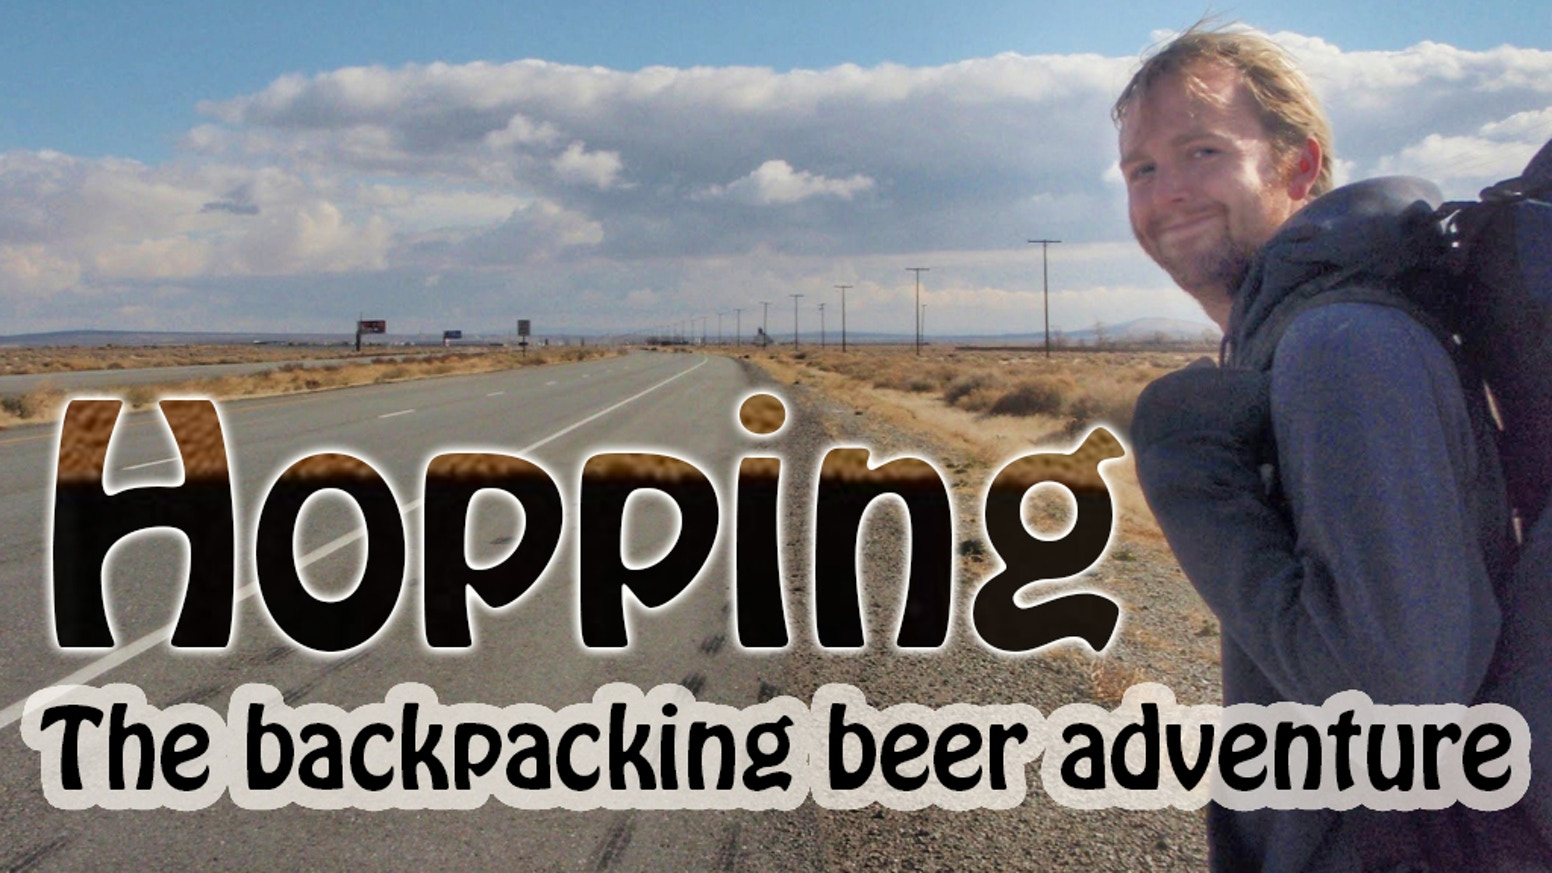 A beer-inspired backpacking journey with a seasoned traveler, hitchhiking between breweries and homebrew sessions in inspiring fashion.